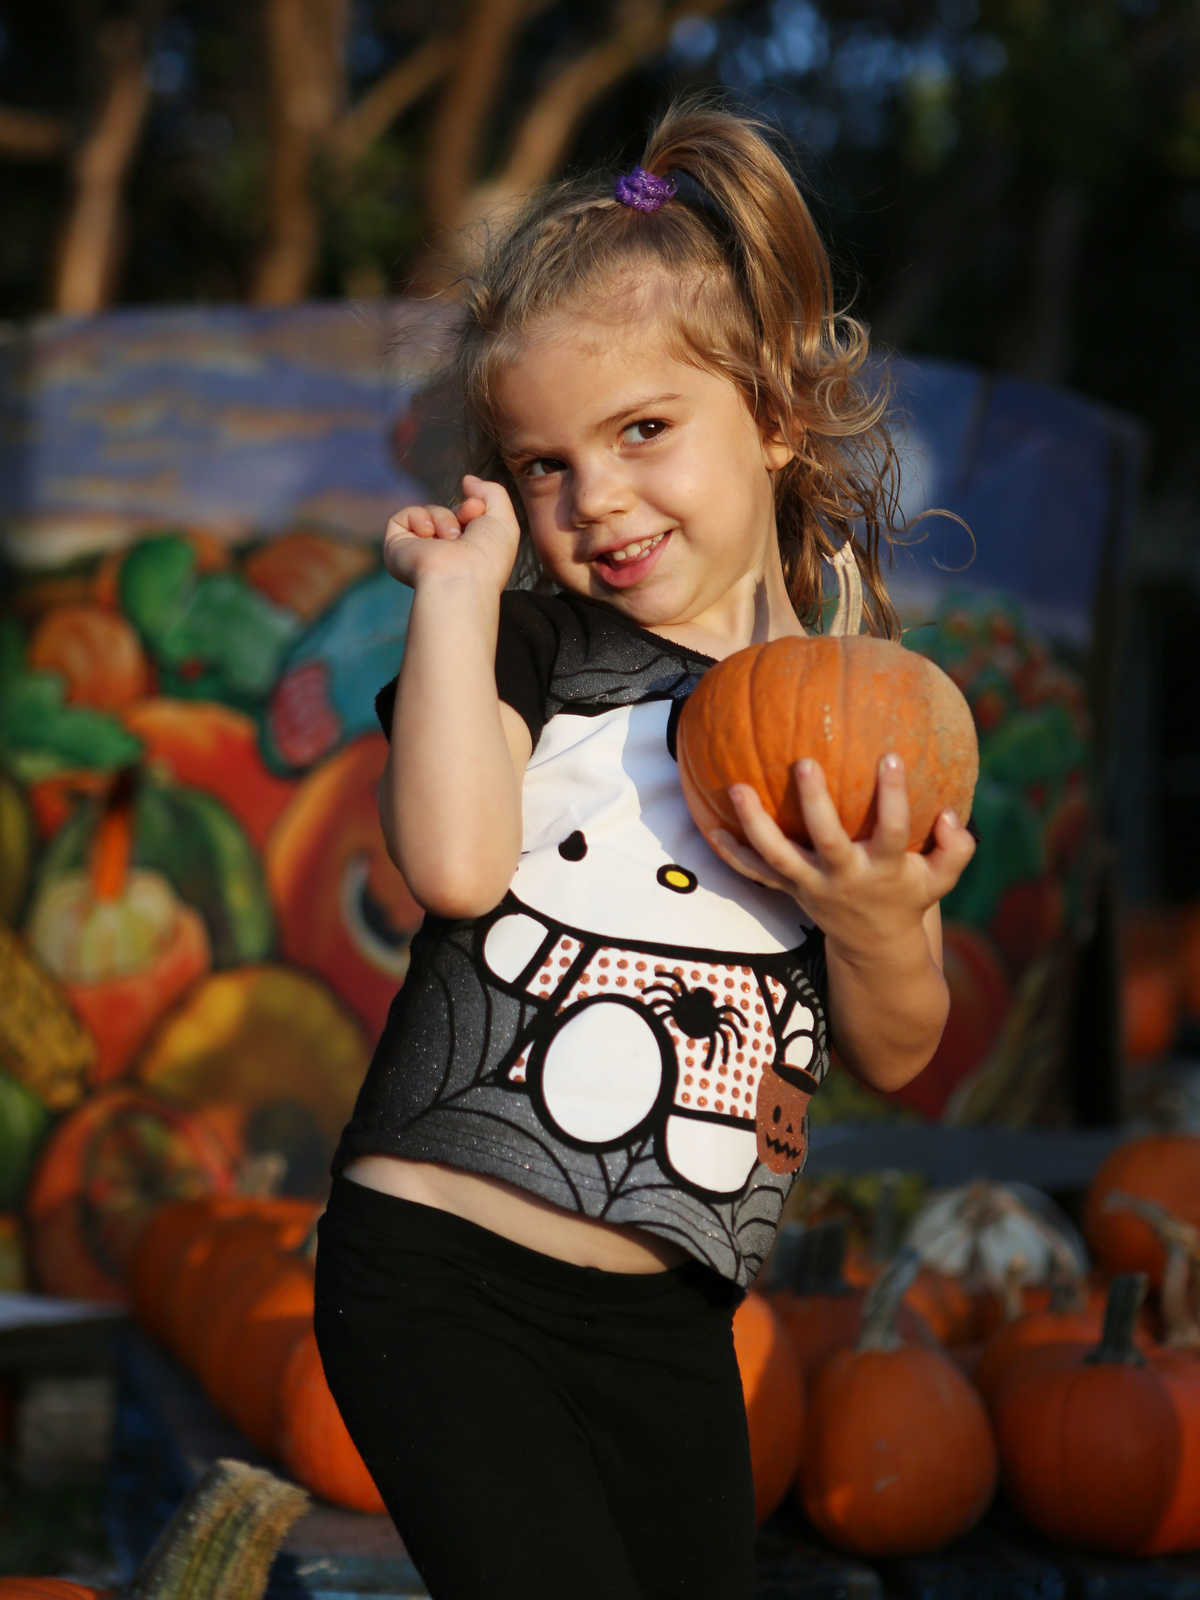 Young girl wearing a Hello Kitty shirt holding a pumpkin at a pumpkin patch